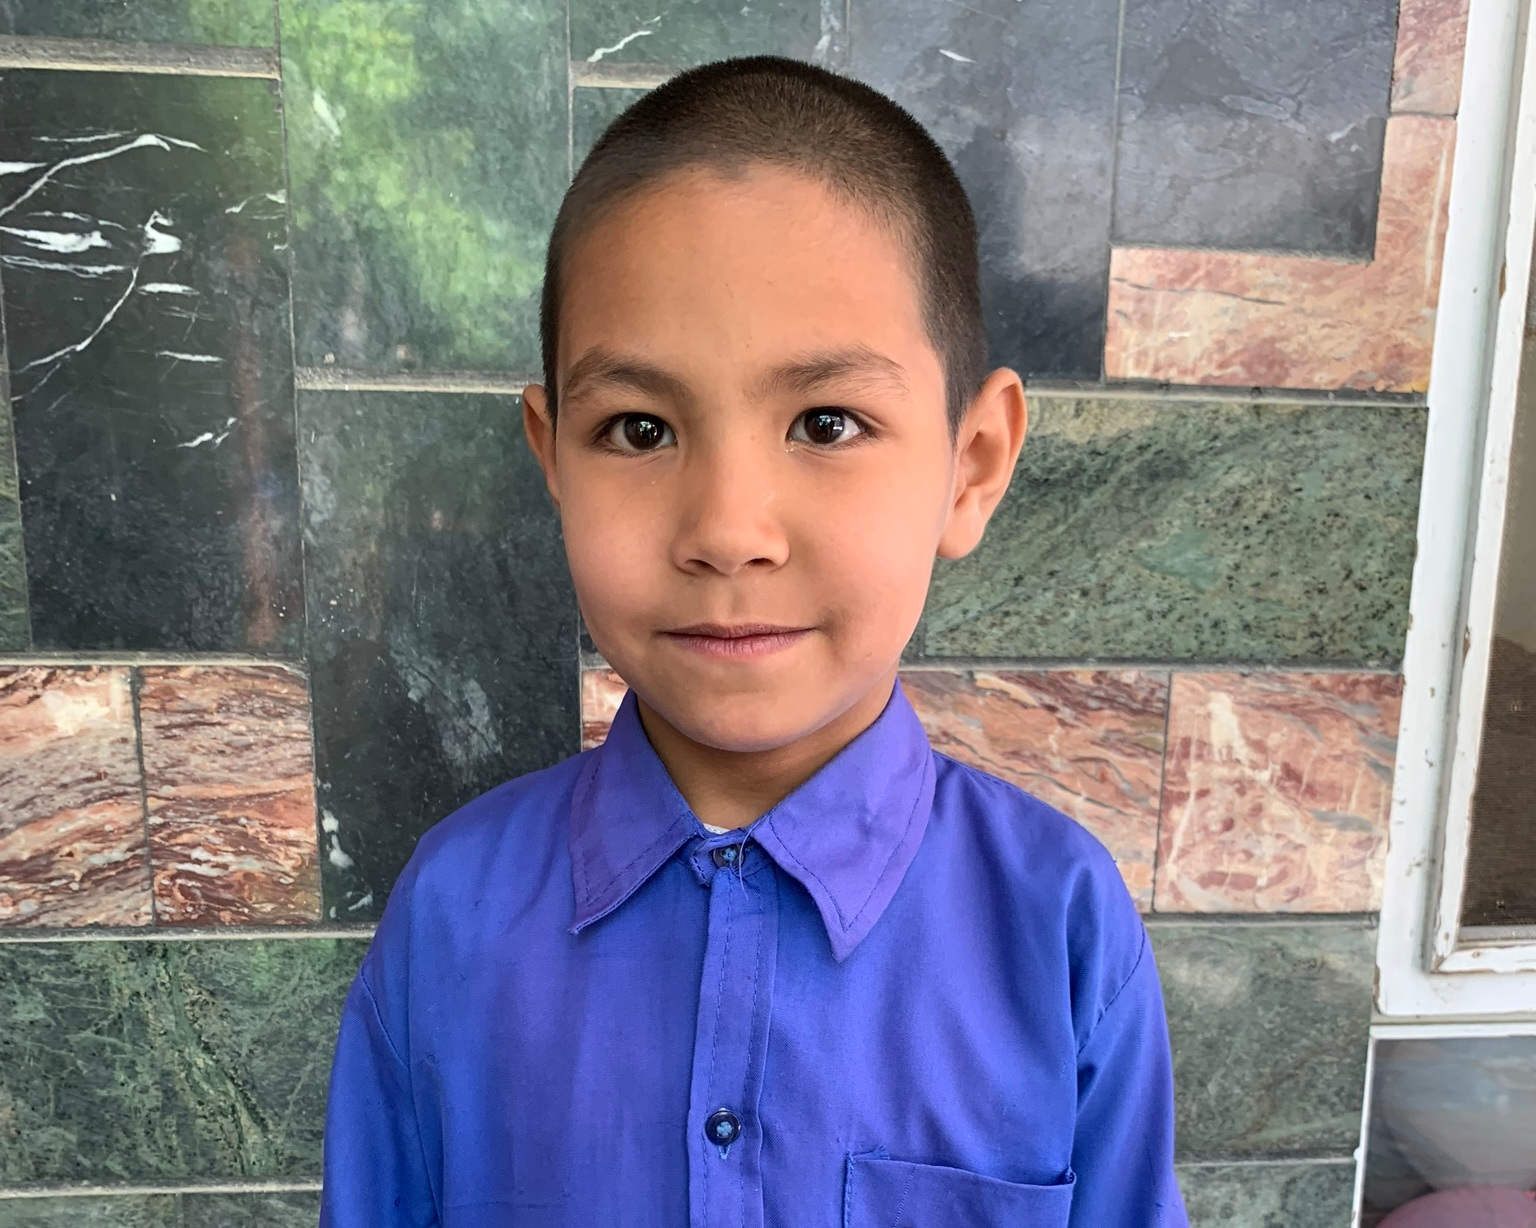 Qaimai, Age 7 - Qaimai has 6 siblings. His mother is a graduate of the beadwork program at the Sozo Training Center. His father is unemployed.BE QAIMAI'S PARTNER>